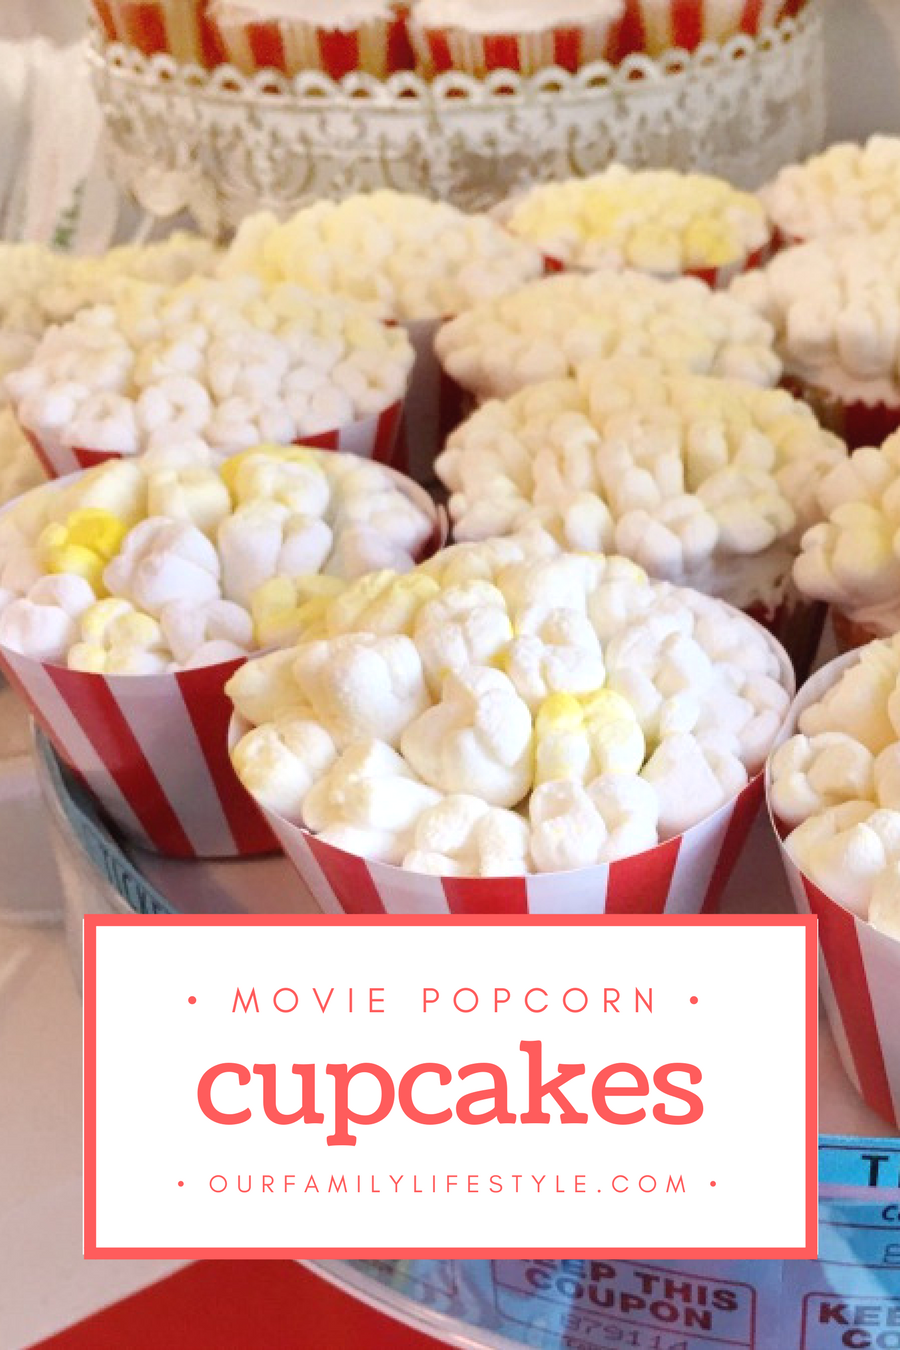 Enjoy Movie Popcorn Cupcakes for Family Movie Night